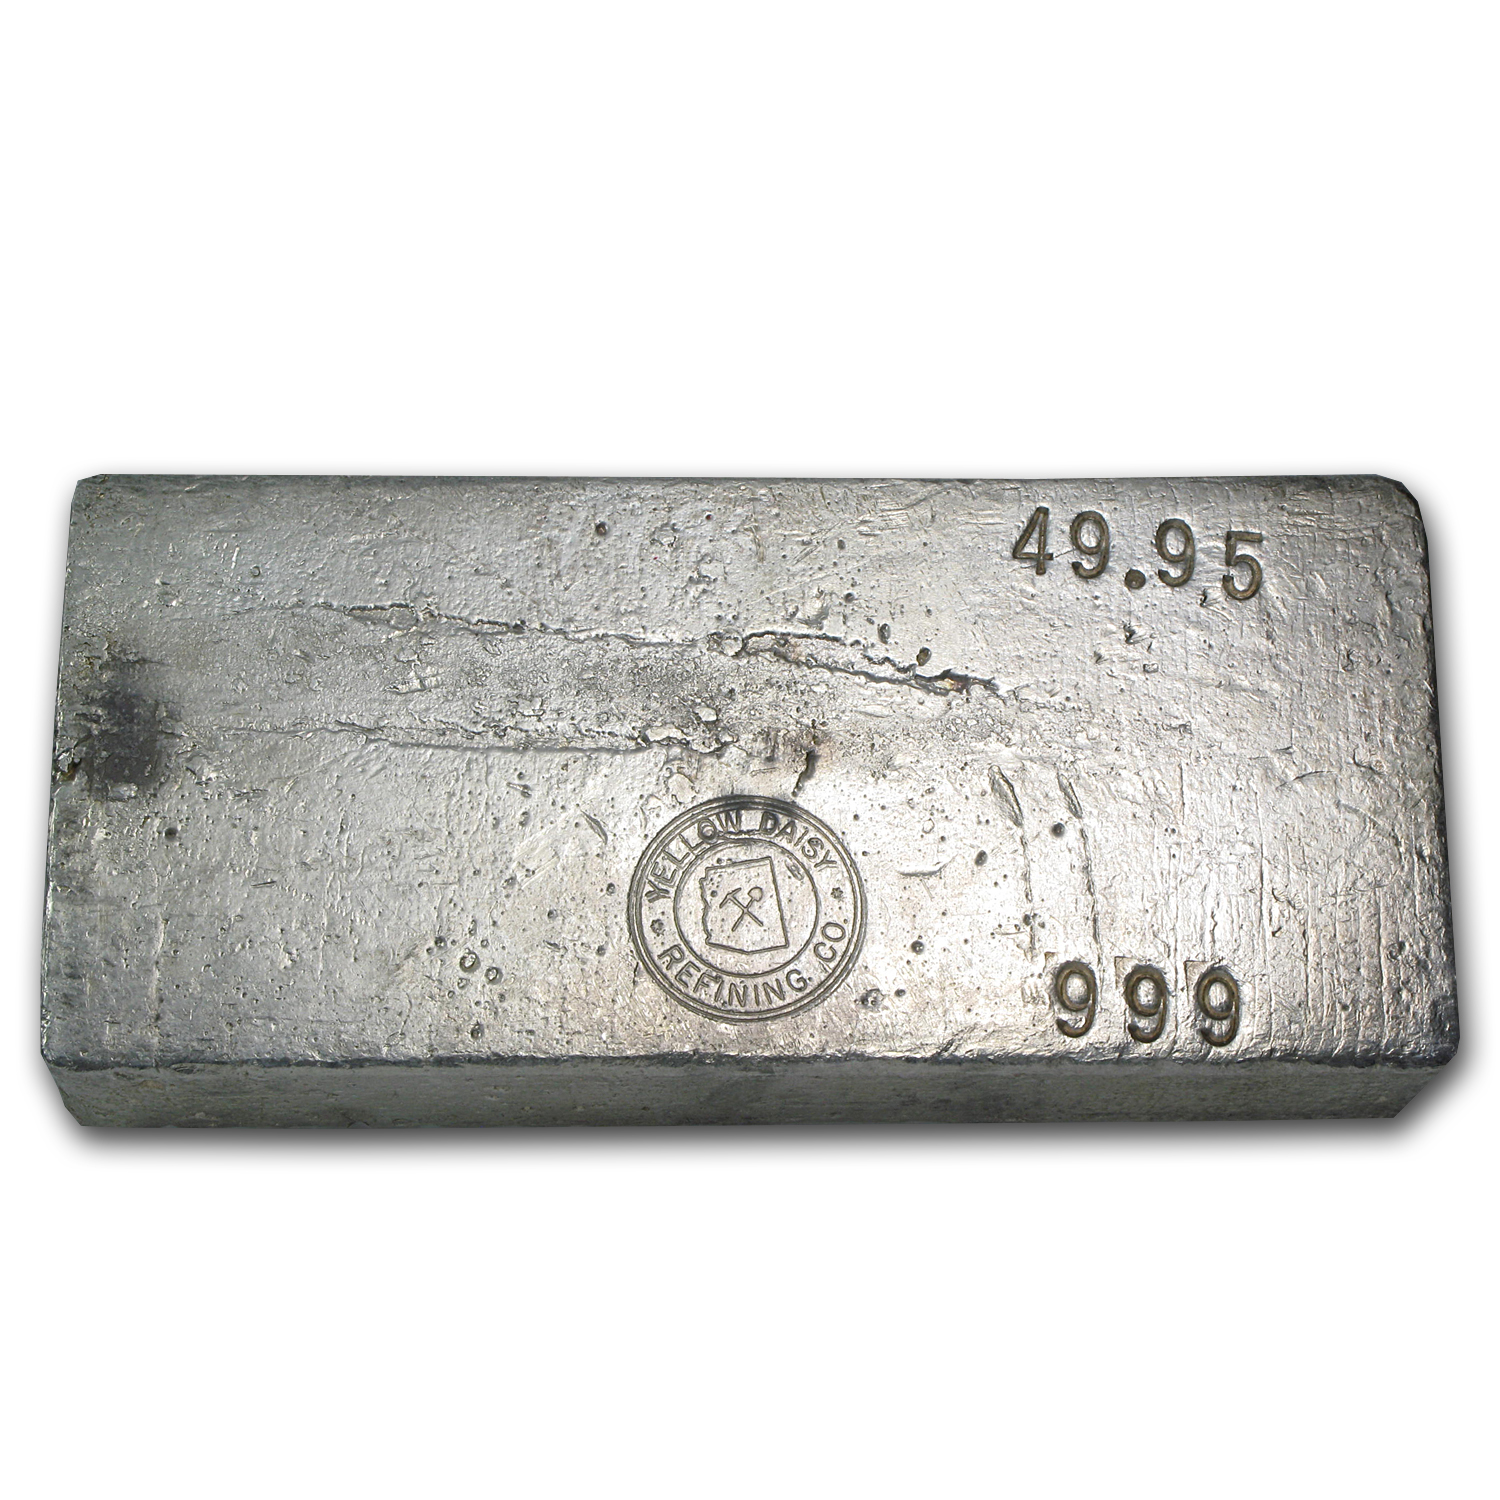 49.95 oz Silver Bar - Yellow Daisy Refining Co.